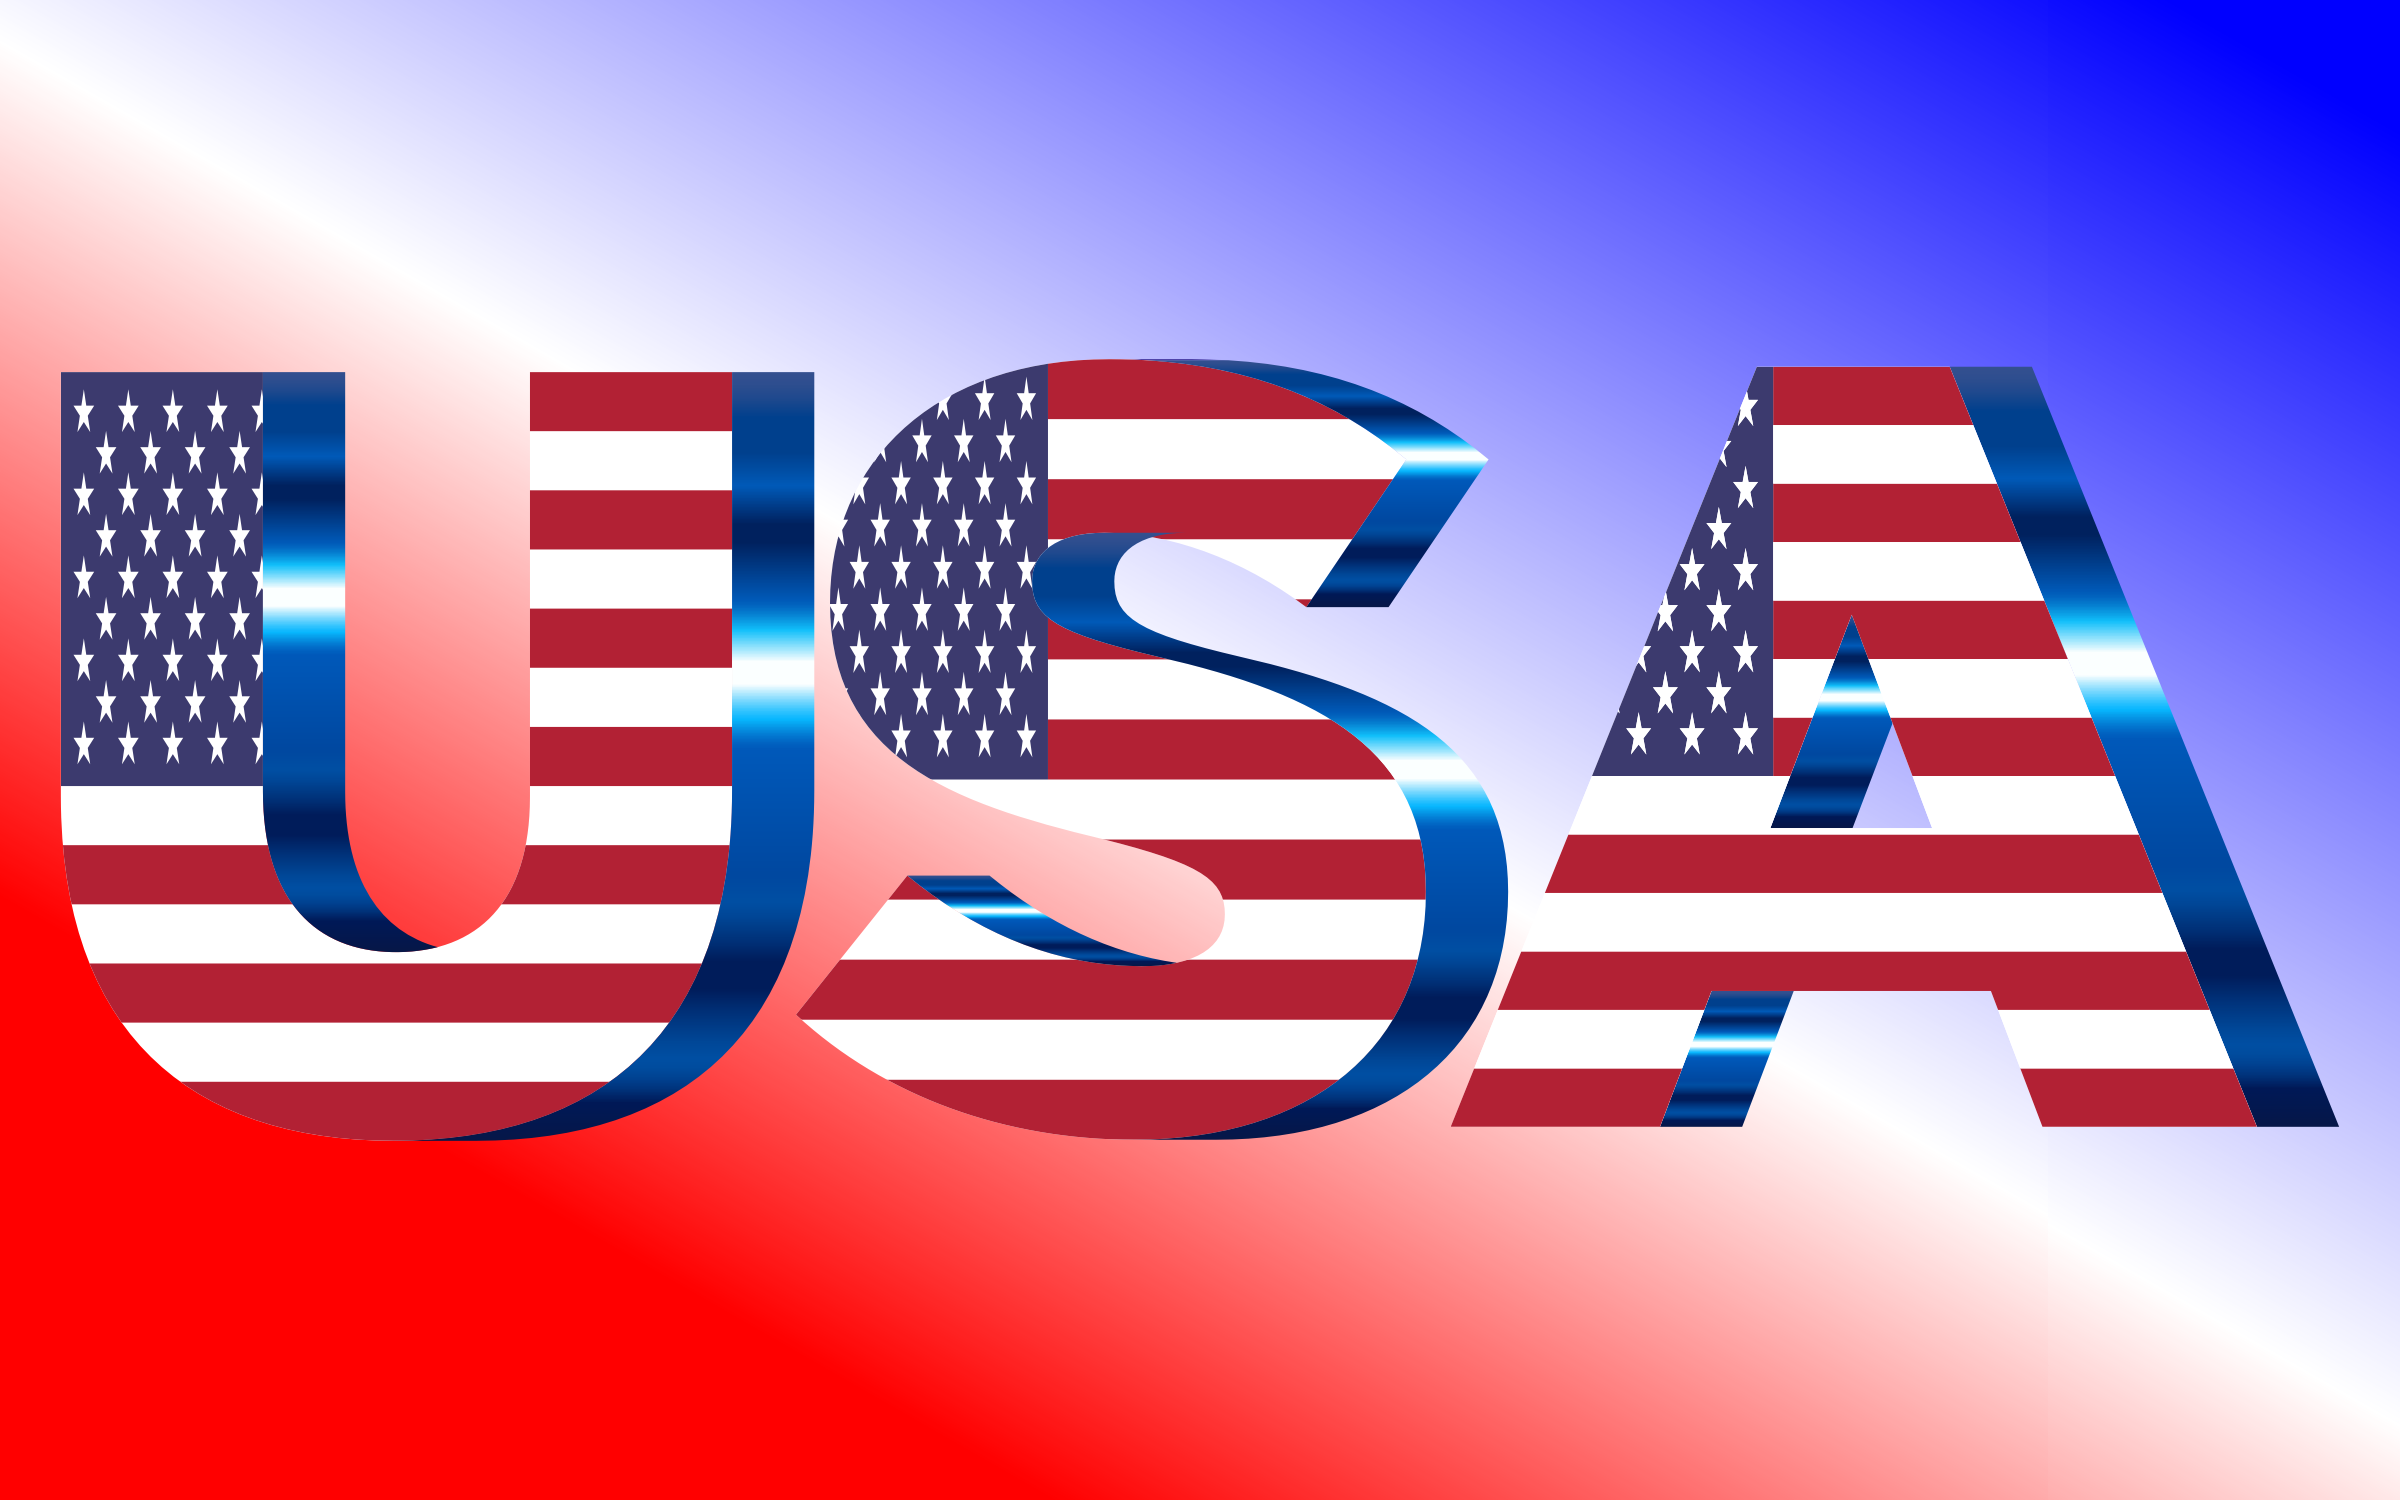 USA Flag Typography No Filters by GDJ